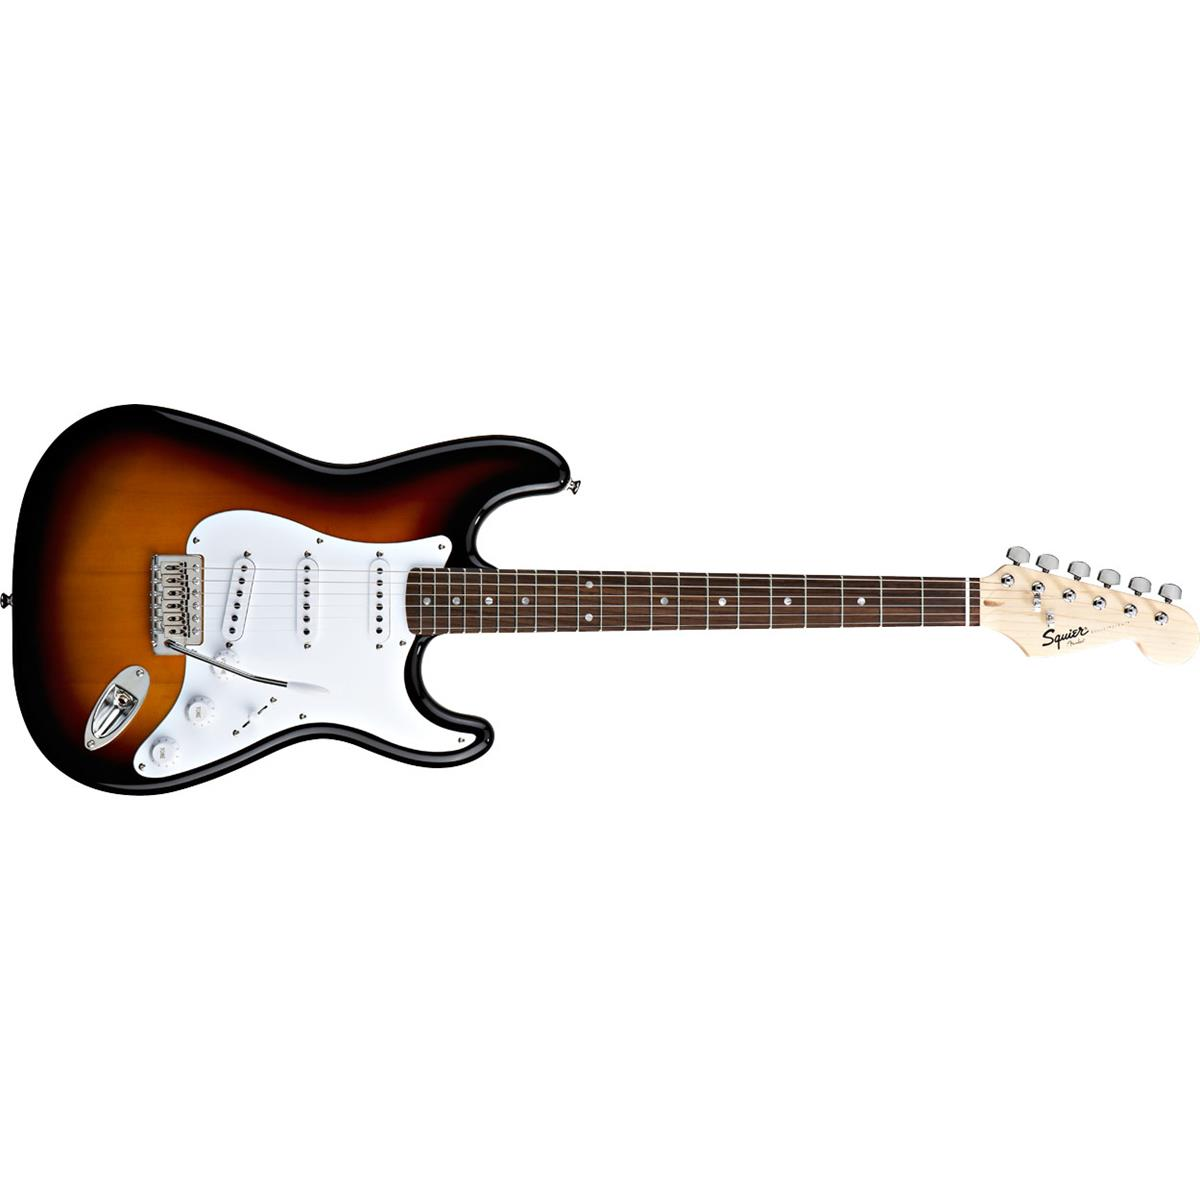 SQUIER-BULLET-STRATOCASTER-BROWN-SUNBURST-0310001532-sku-1356